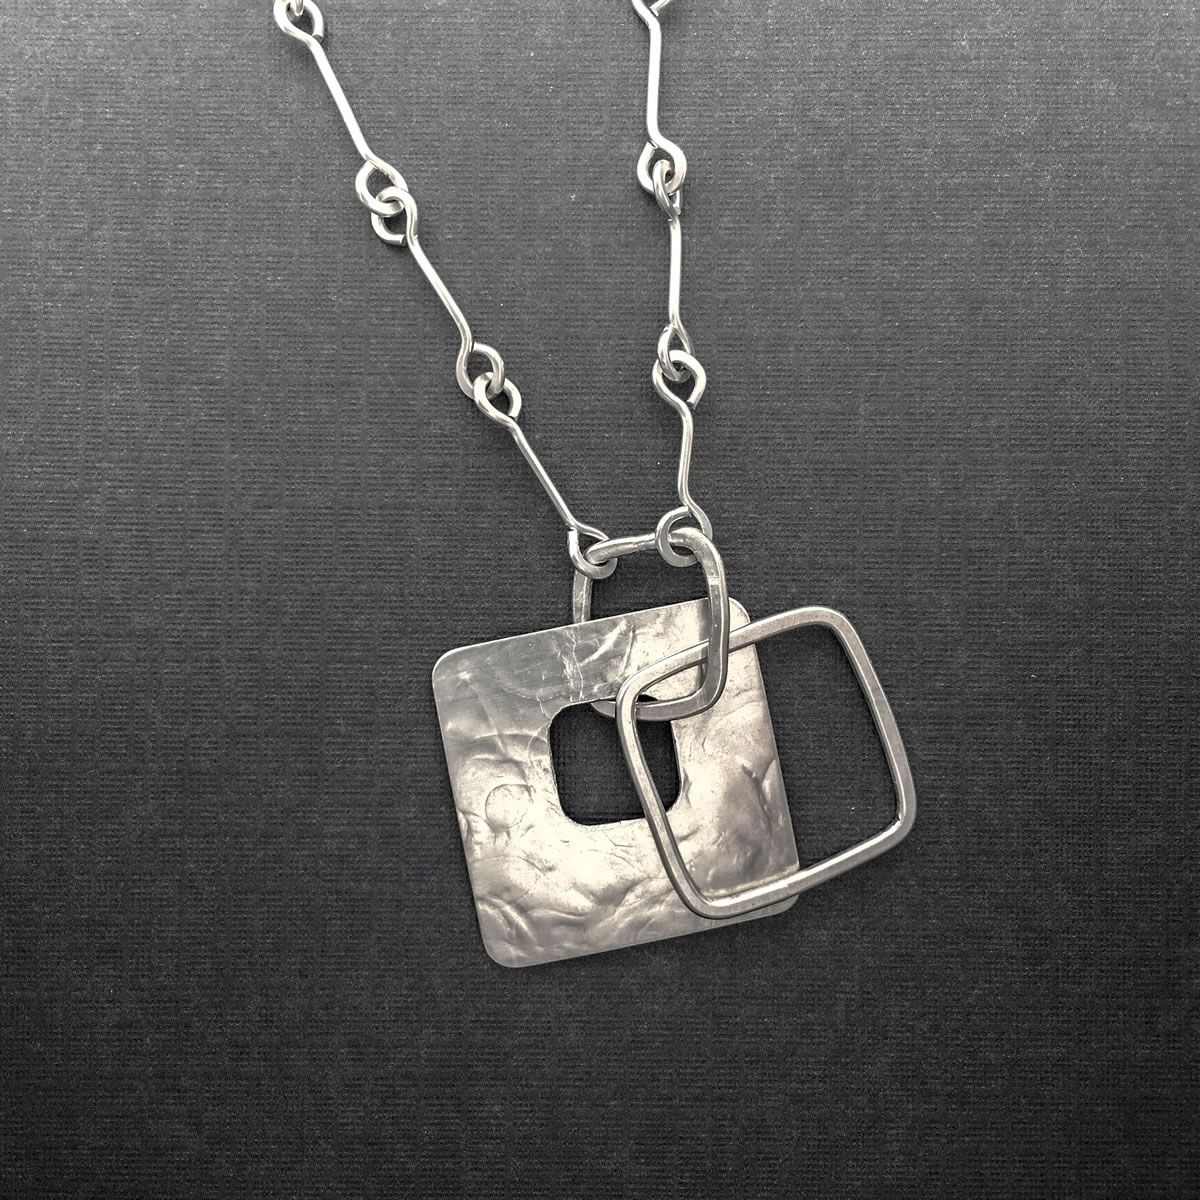 Image result for square handmade jewelry jewelry pendants image result for square handmade jewelry mozeypictures Gallery